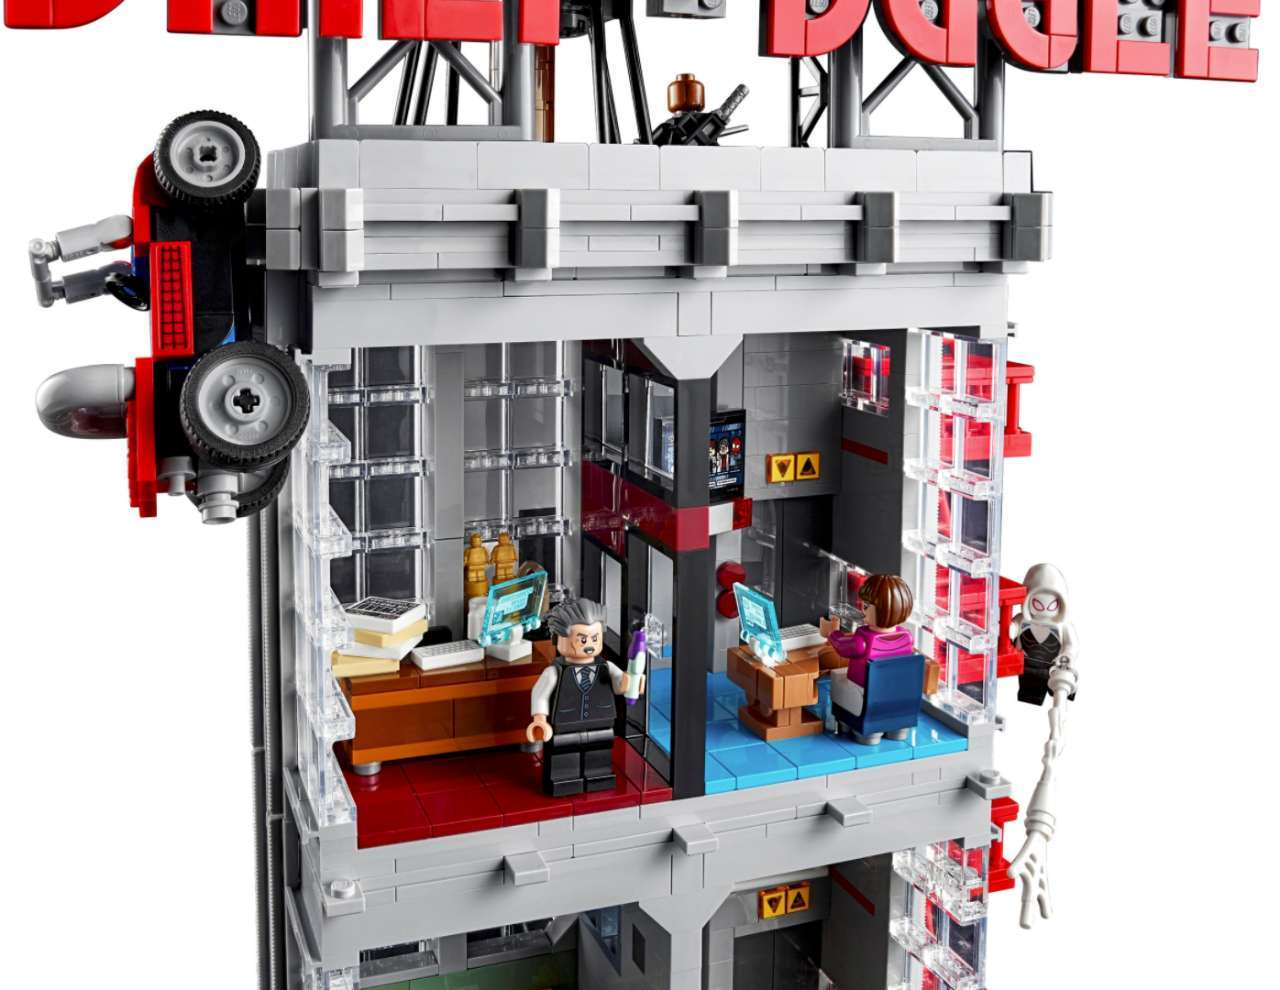 lego-spider-man-daily-bugle- 2021-05-17 at 102520 AM